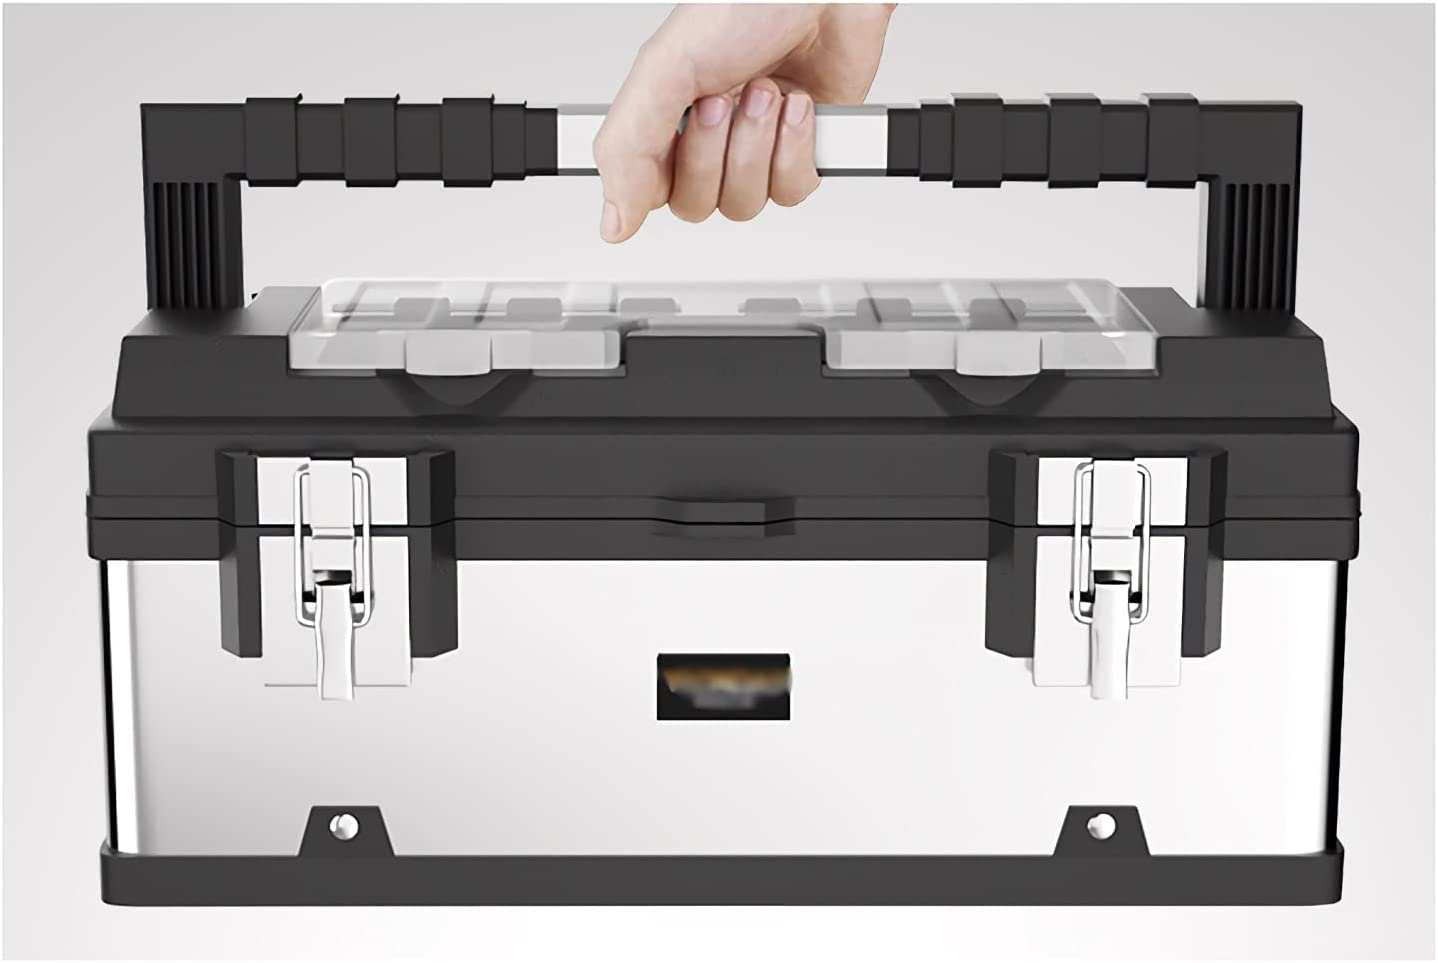 Toolbox Tool Max 82% OFF Box Stainless Steel New sales Removable Tray L with Organizer